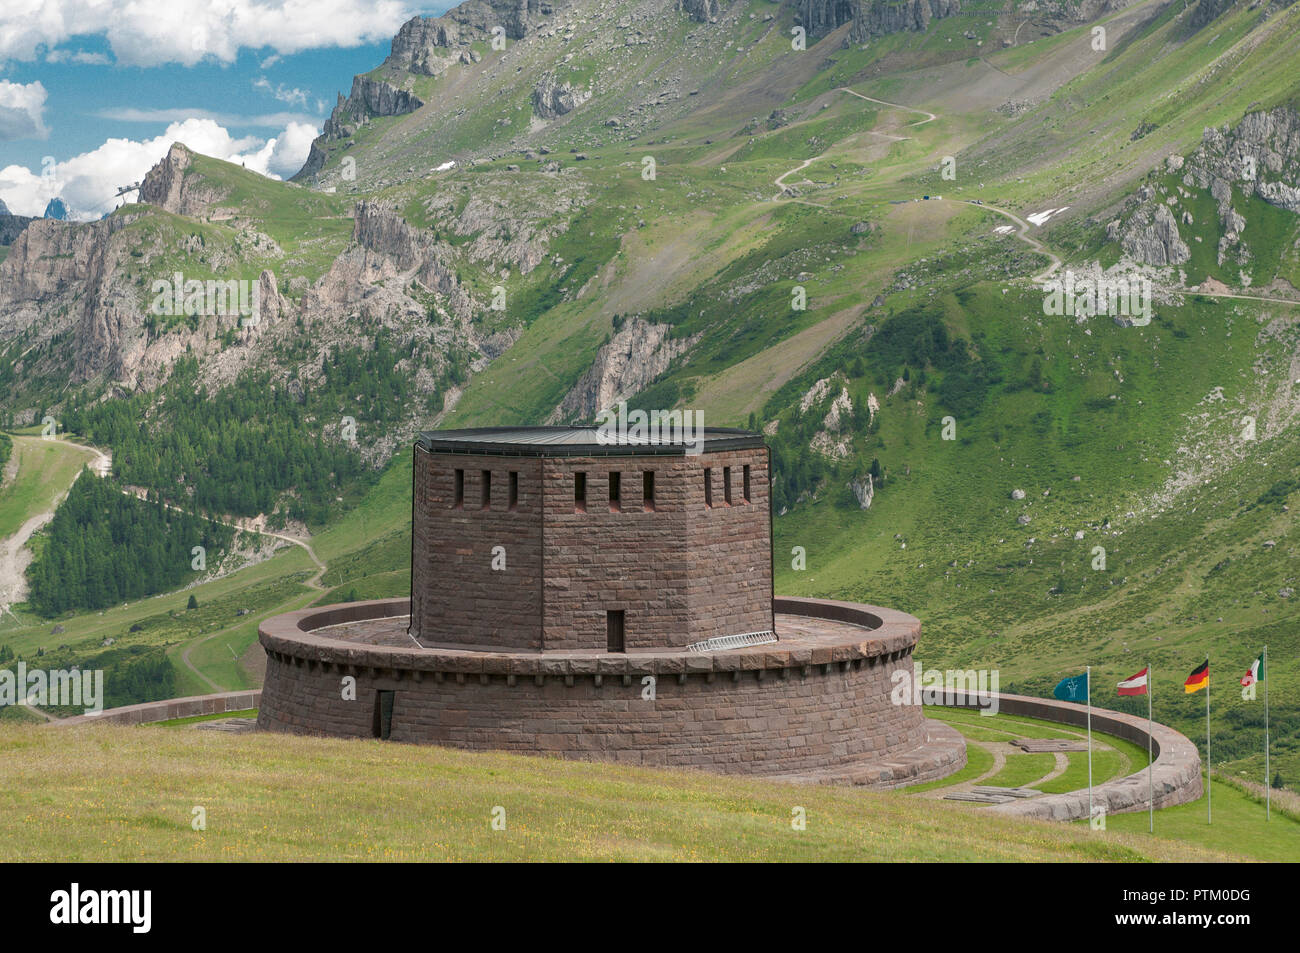 War Gravesite for German and Austrian fallen soldiers, First World War, Livinallongo del Col di Lana, Pordoijoch, Veneto, Italy Stock Photo